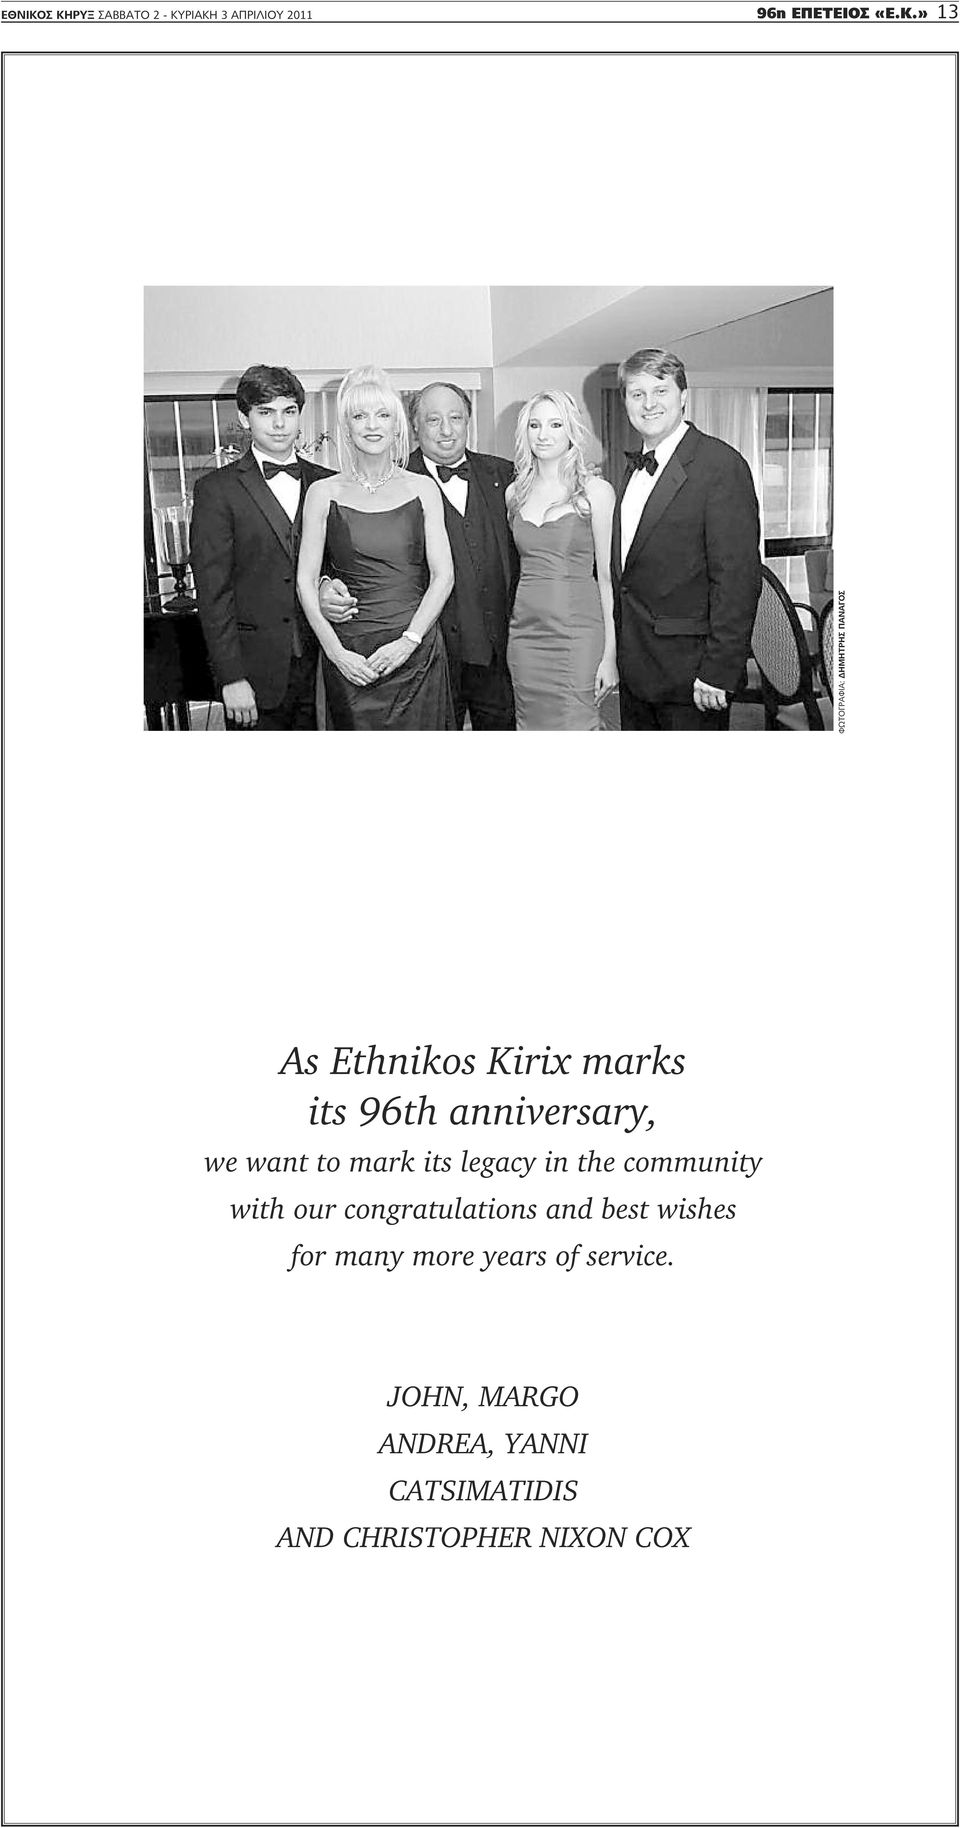 ΔΗΜΗΤΡΗΣ ΠΑΝΑΓΟΣ As Ethnikos Kirix marks its 96th anniversary, we want to mark its